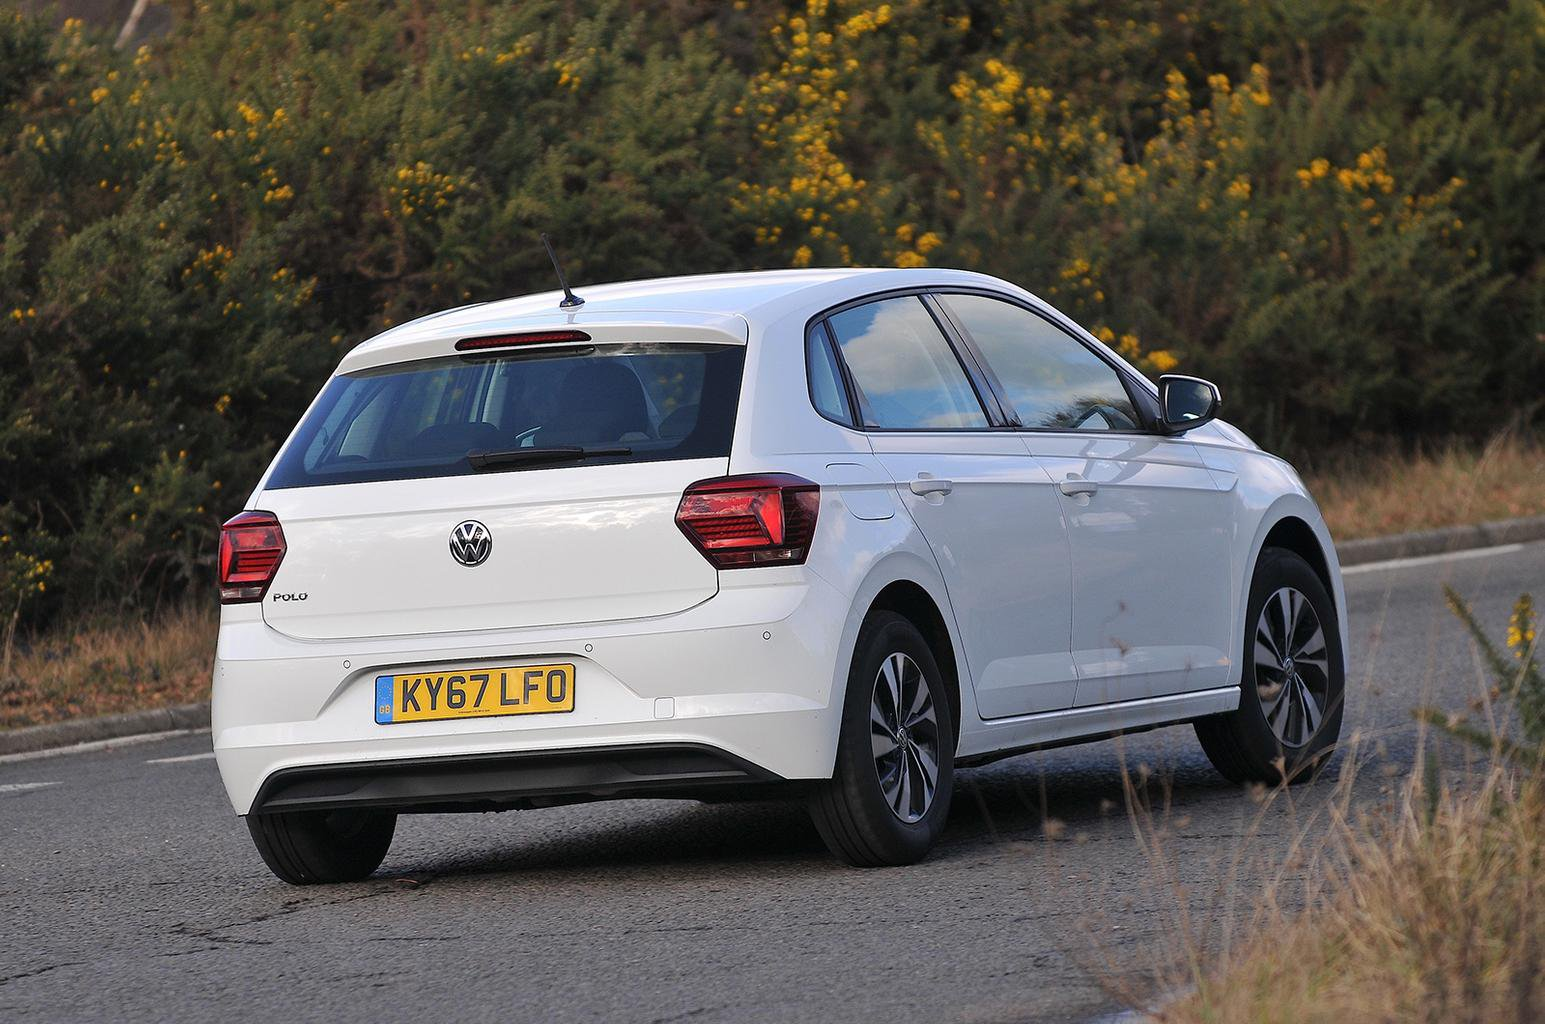 Used Volkswagen Polo 18-present